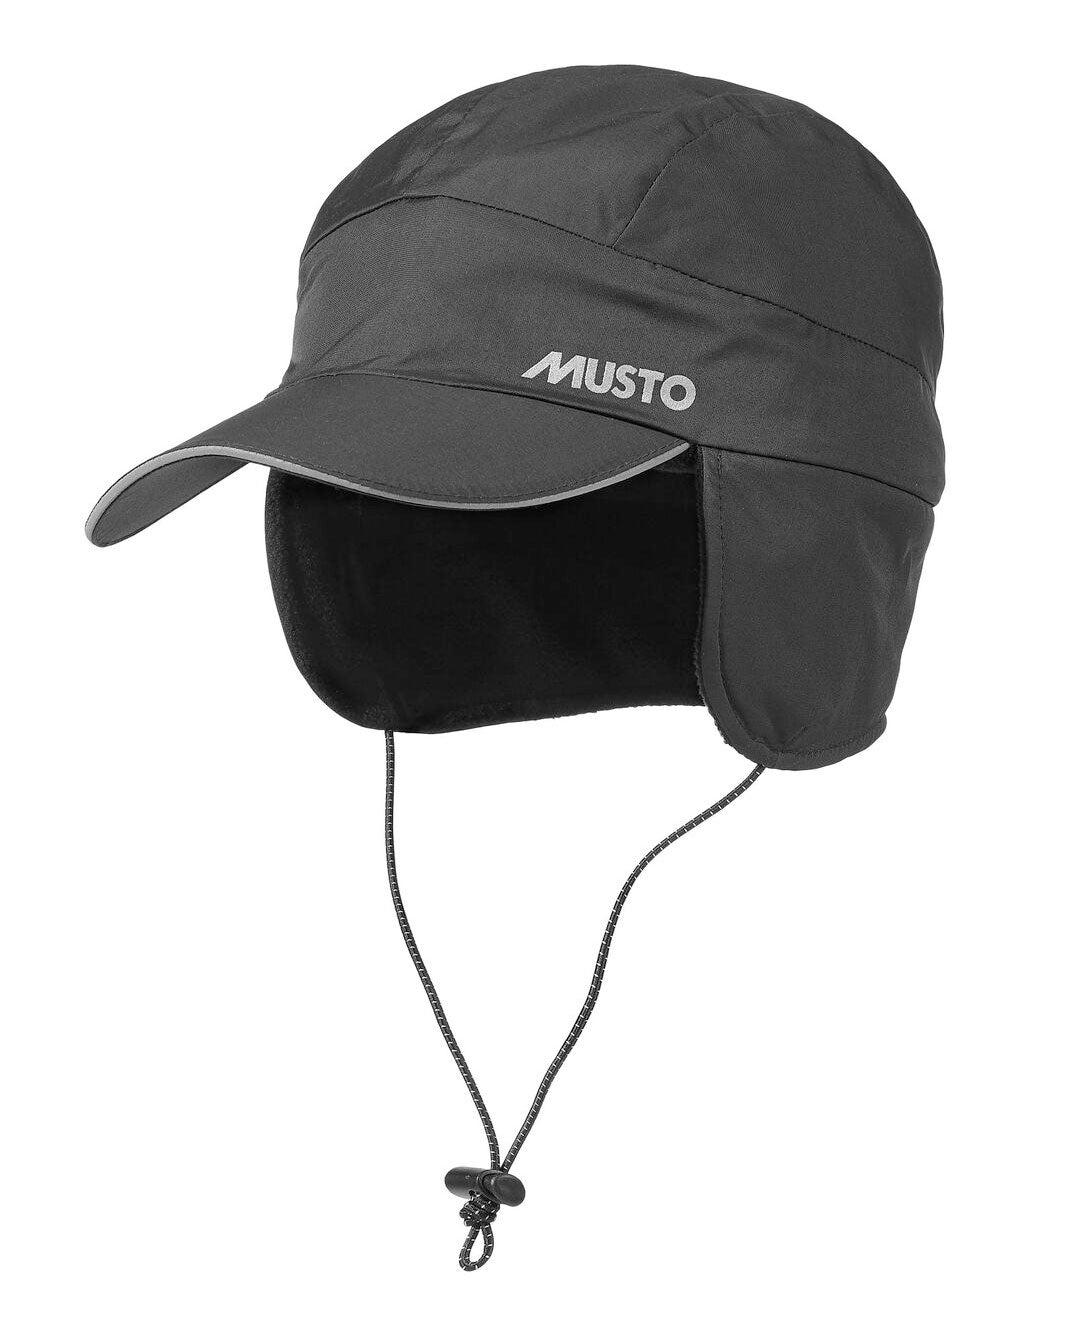 Black Fleece Lined Waterproof Cap by Musto